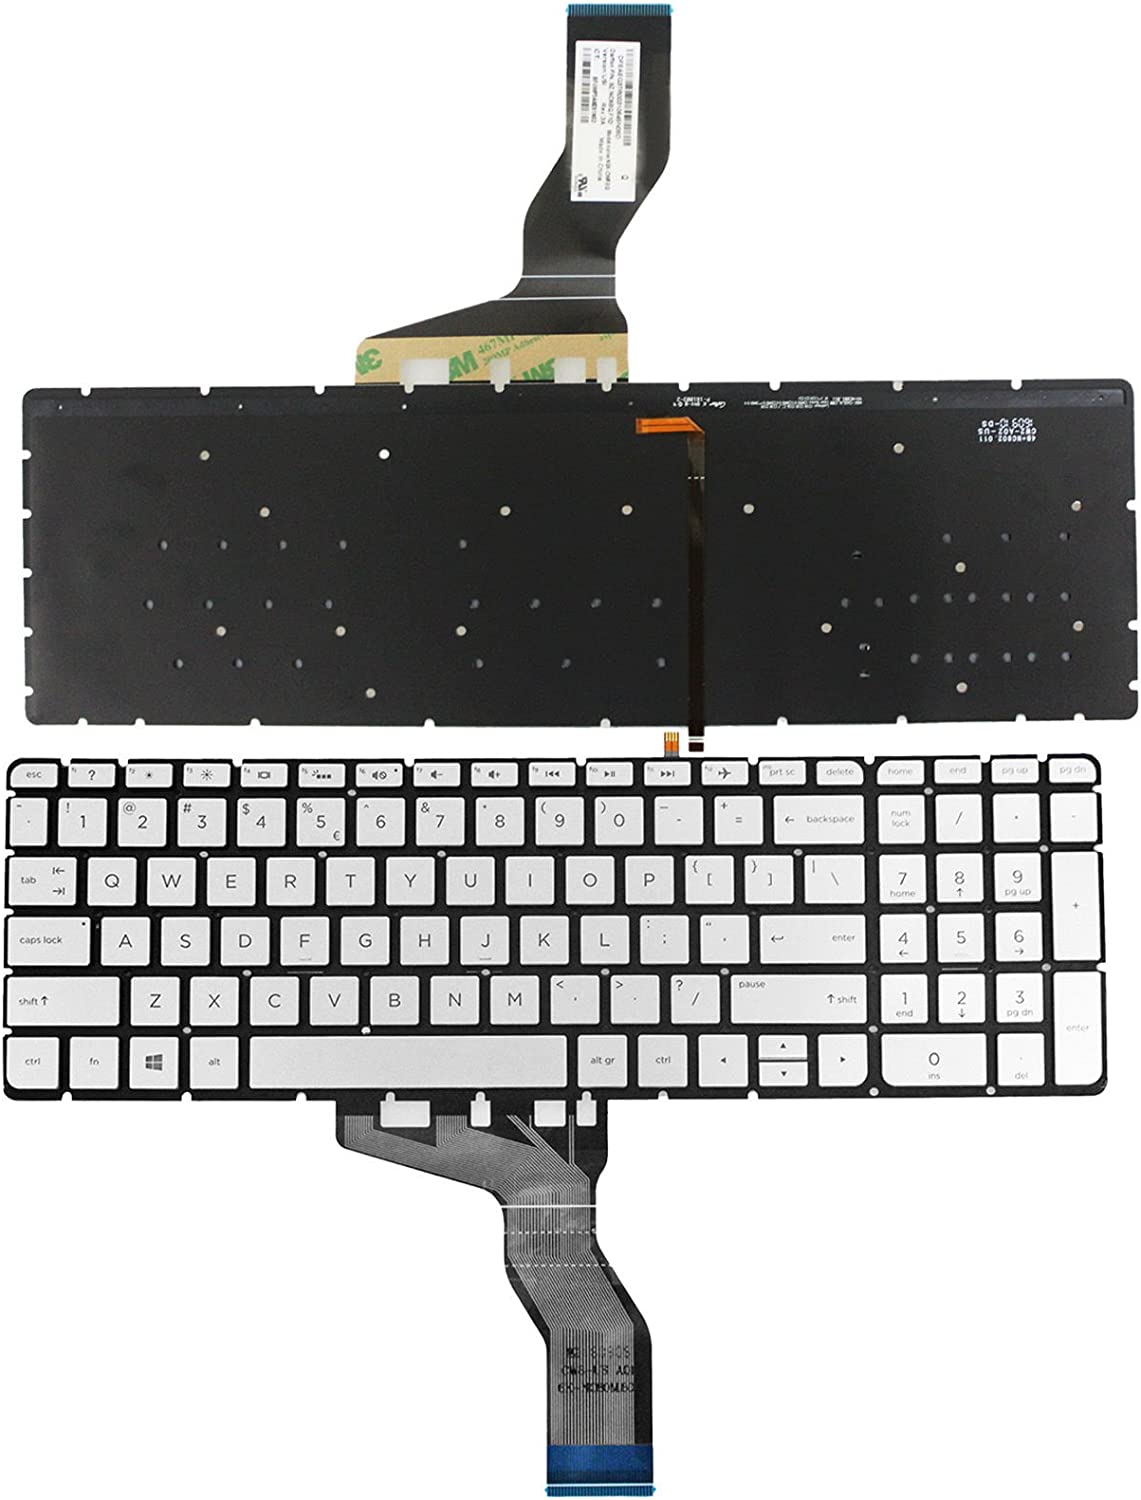 New US Silver Backlit Keyboard (Without Frame) Replacement for HP Envy m7-u m7-u000 17-u153nr 17-u011nr m7-u009dx m7-u109dx Light Backlight